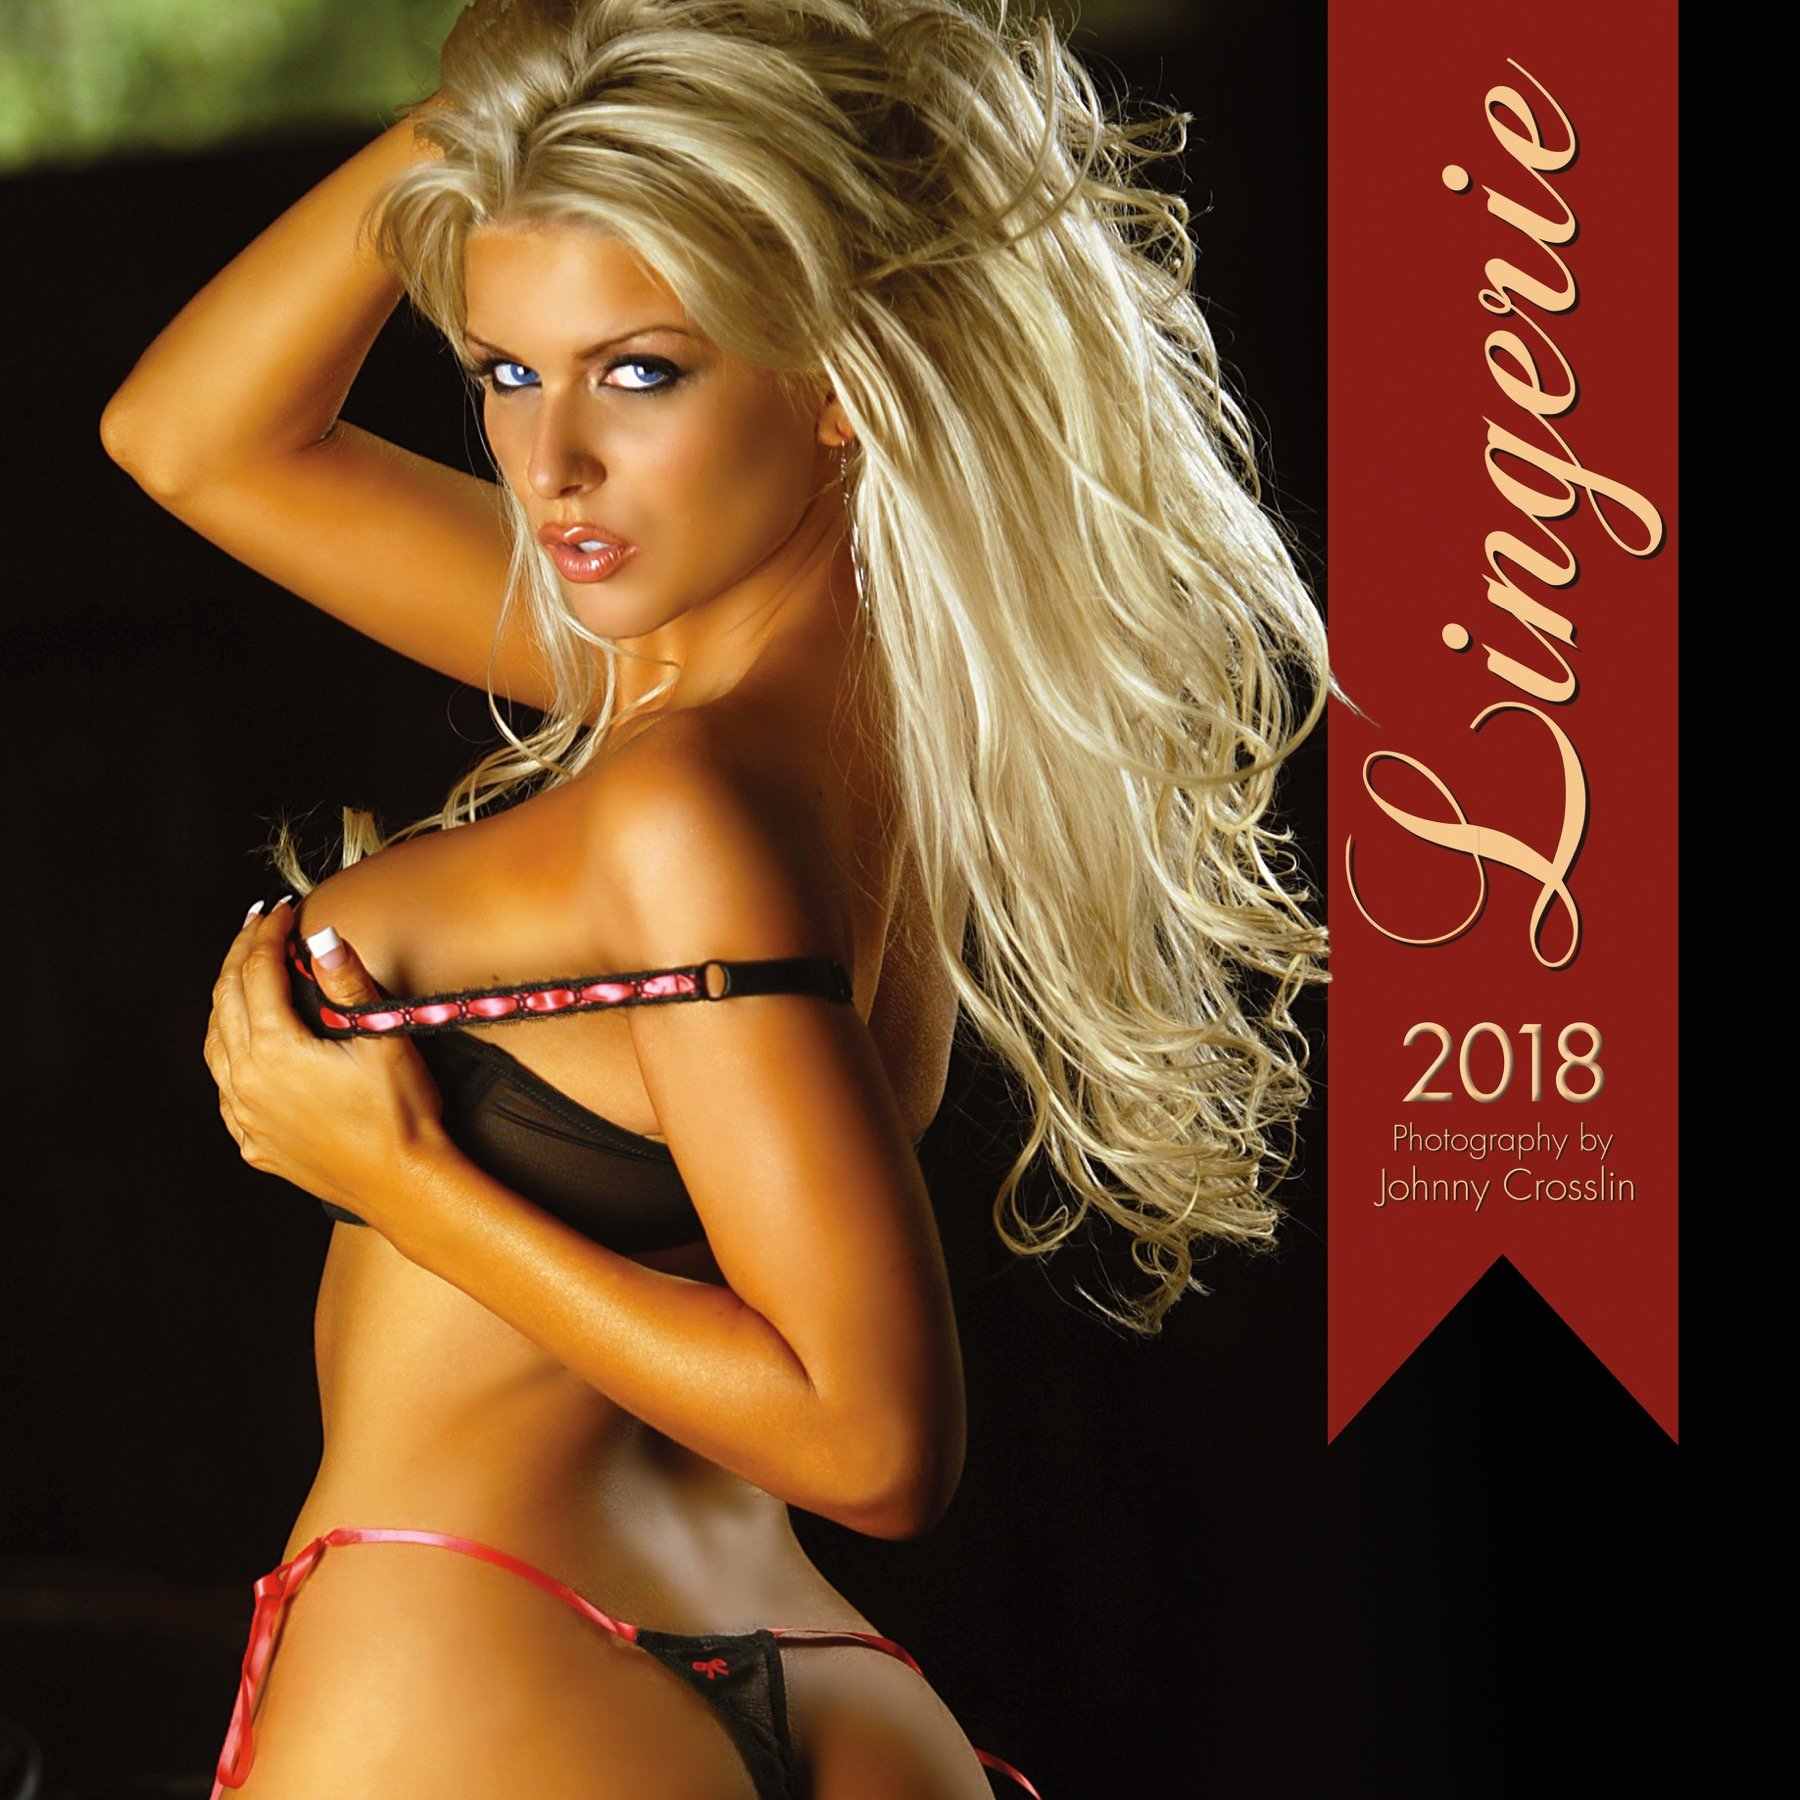 Lingerie 2018 Wall Calendar: Johnny Crosslin: 0629084182060: Amazon.com:  Books